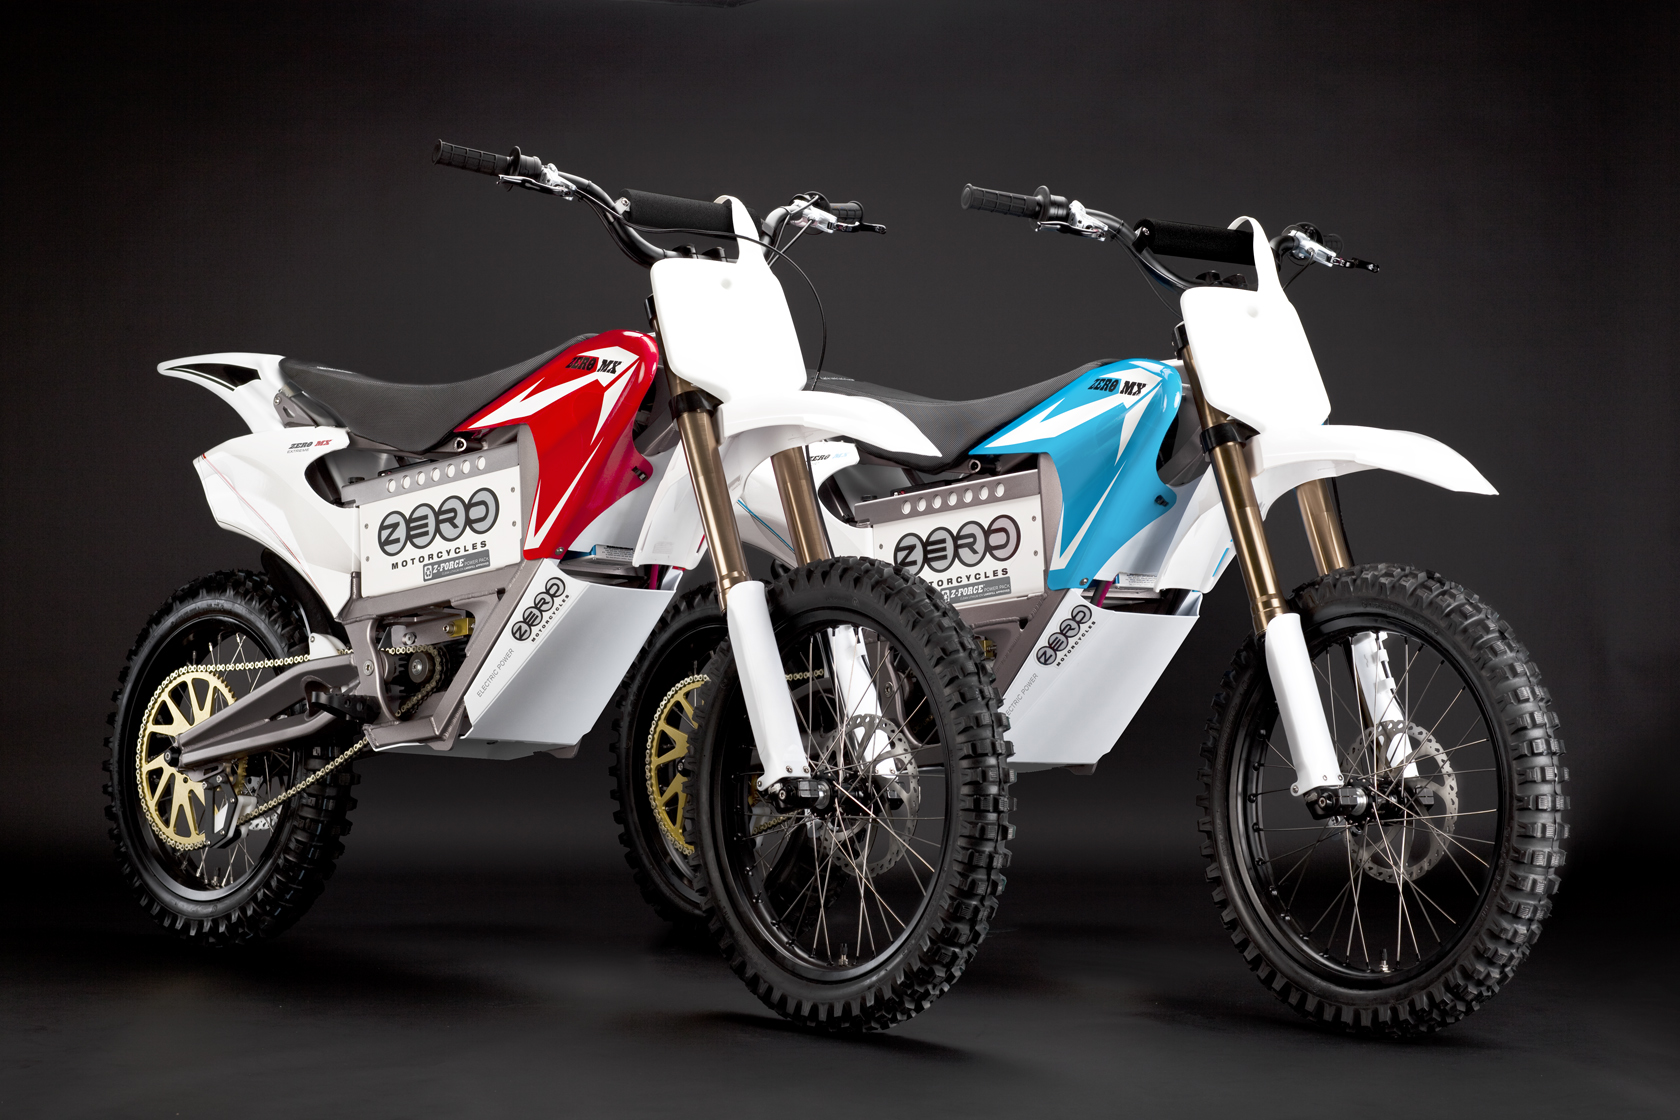 2010 Zero MX Electric Motorcycle: Pair